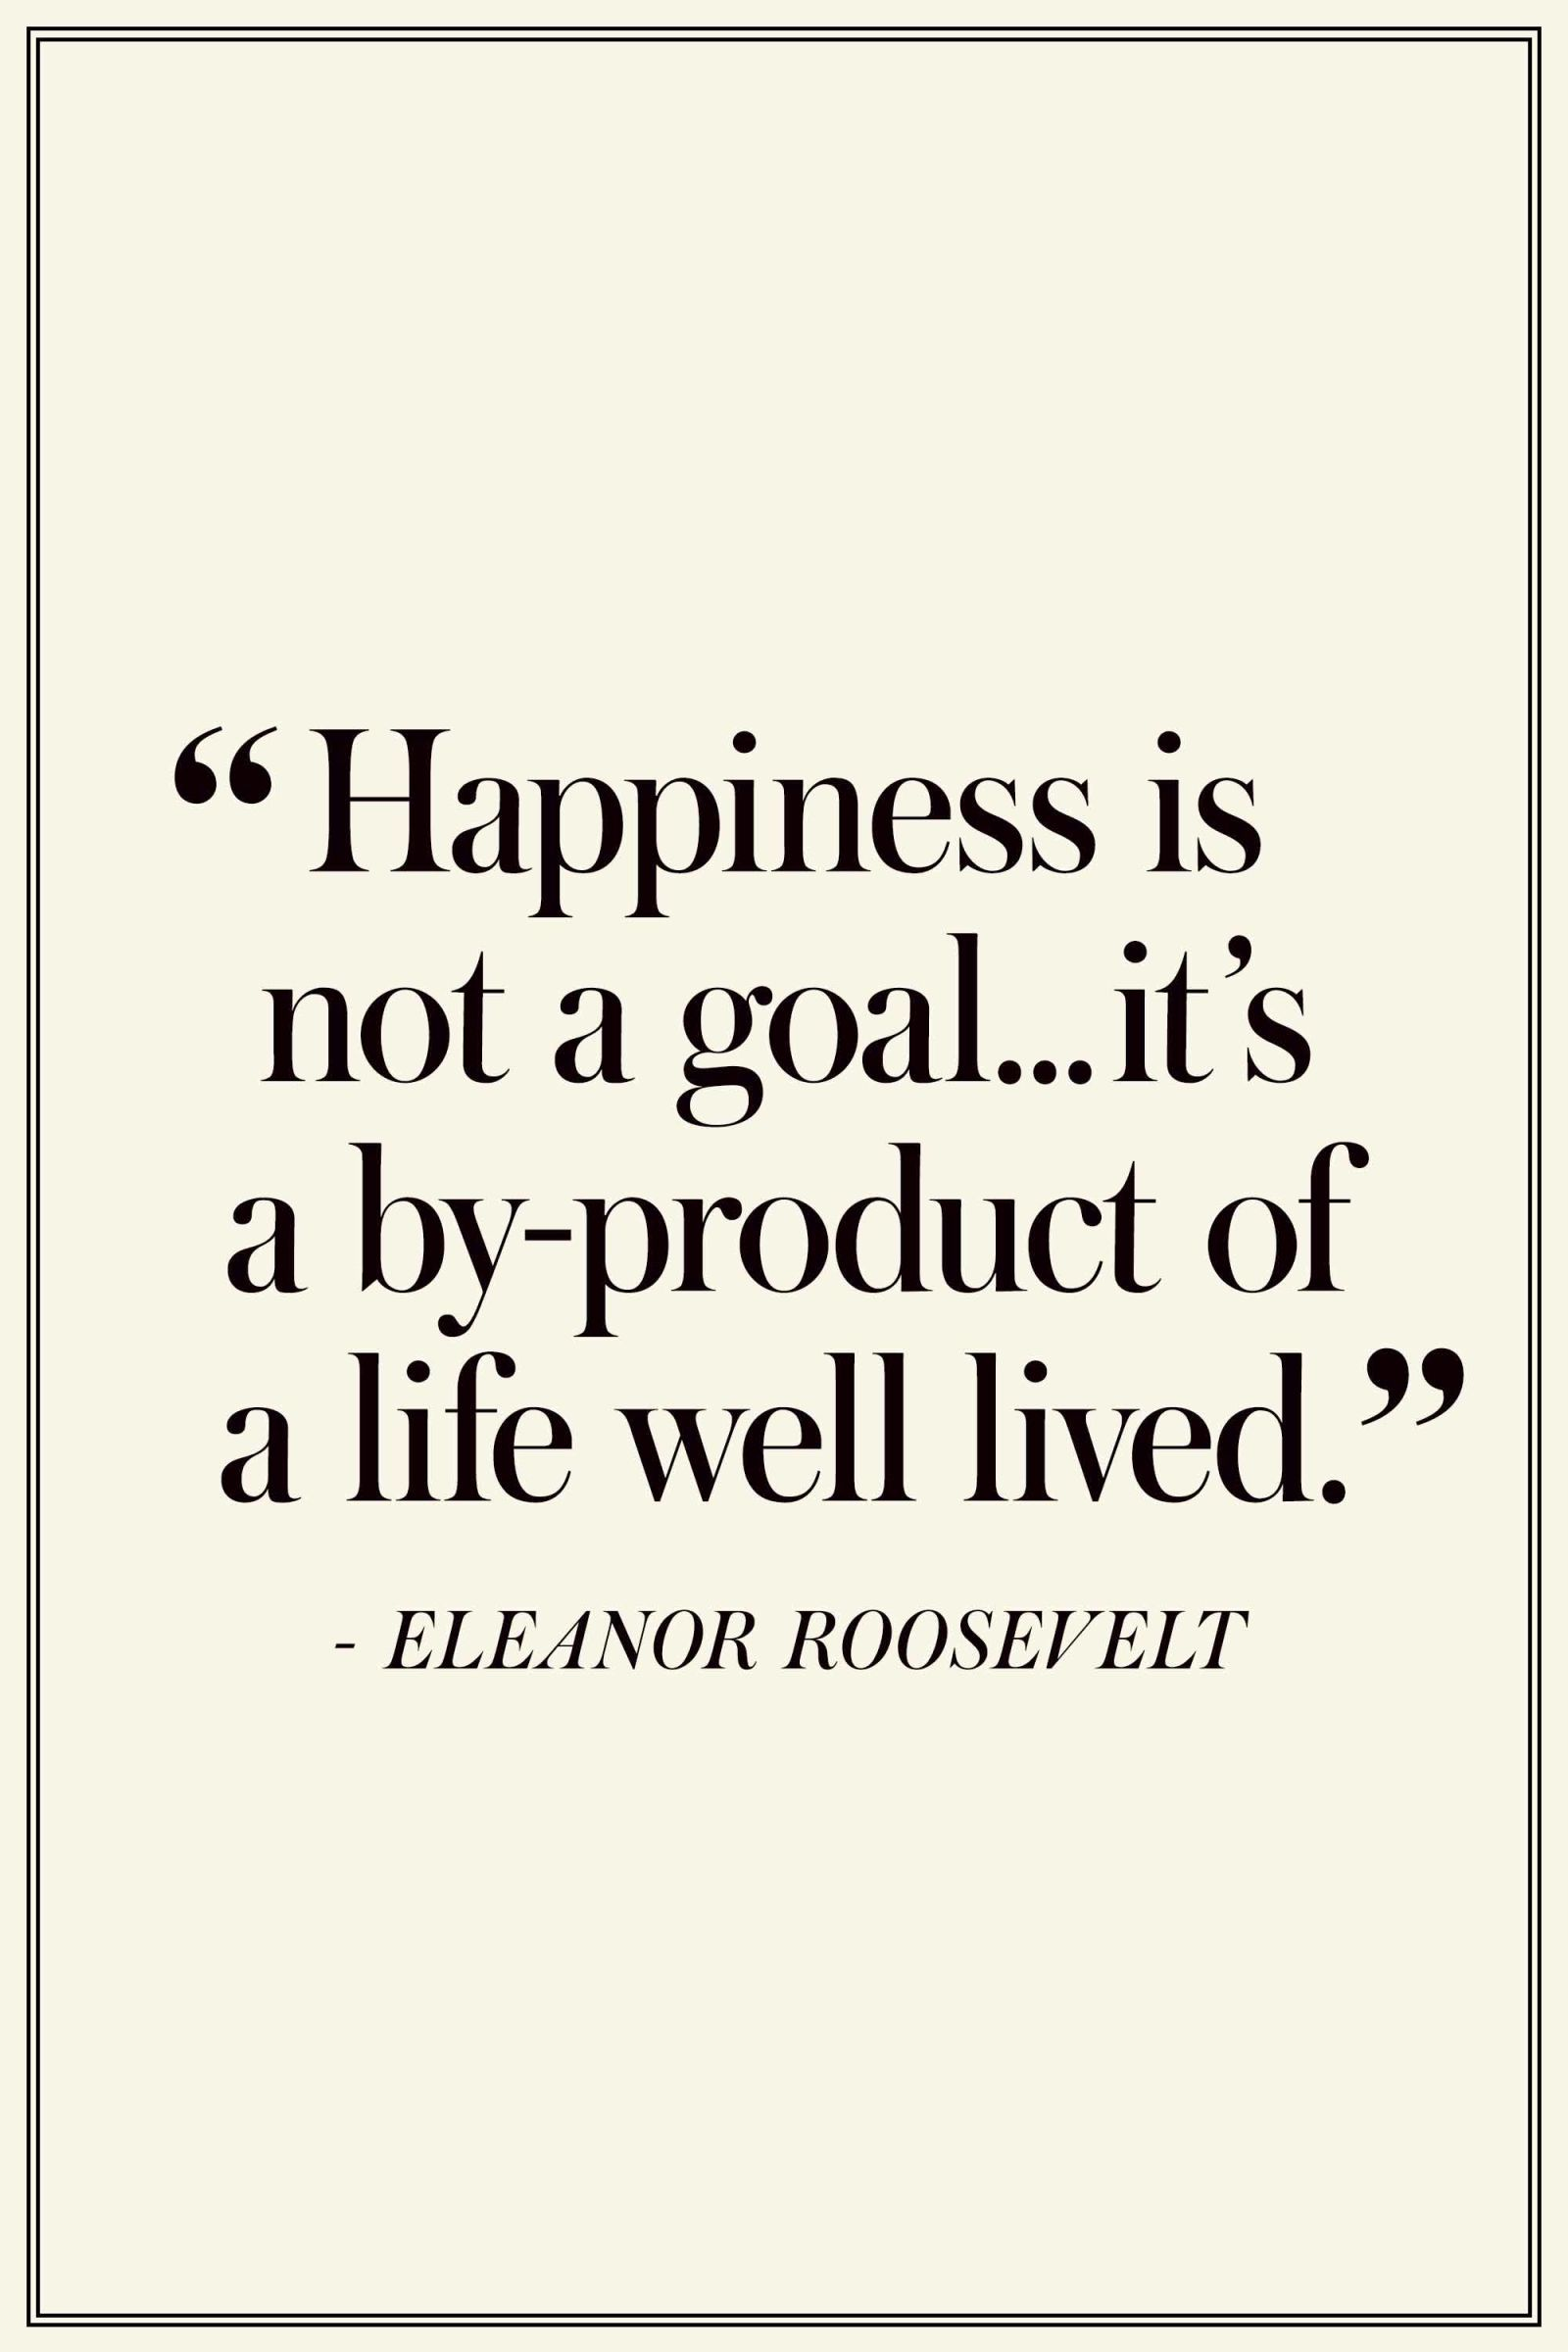 """Eleanor Roosevelt: """"Happiness is not a goal...it's a by-product of a life well lived."""" The Best Quotes On Happiness - TownandCountryMag.com"""